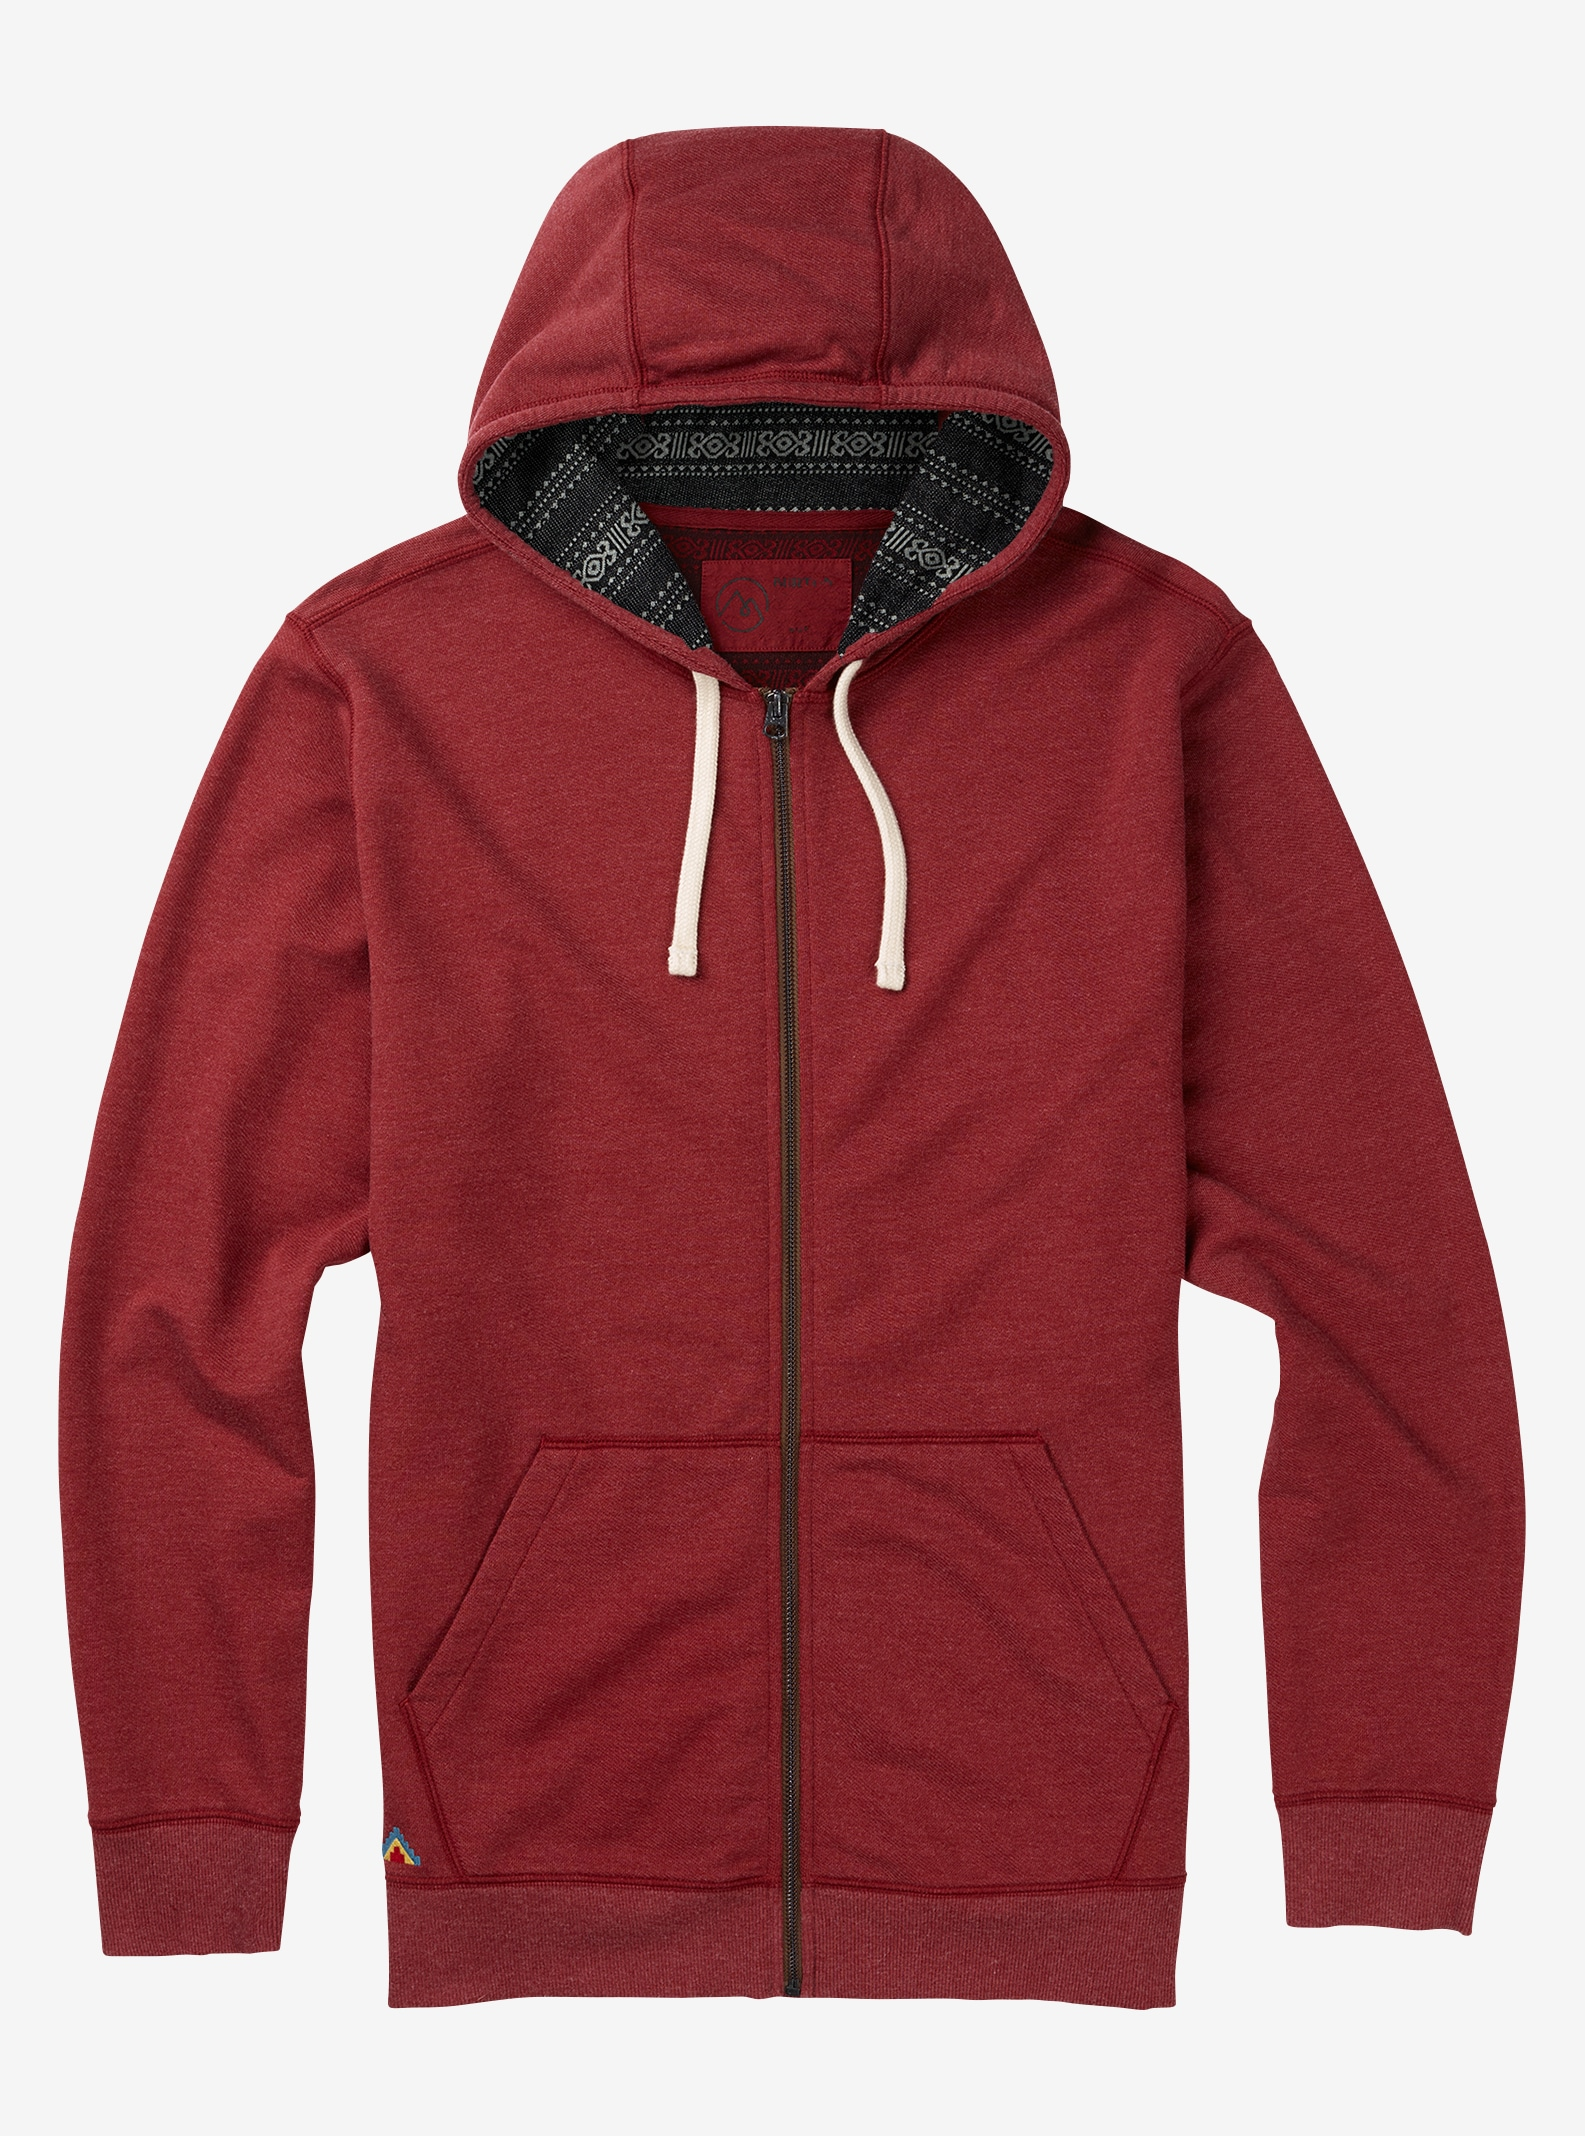 Men's Burton Subvert Full-Zip Hoodie shown in Wino